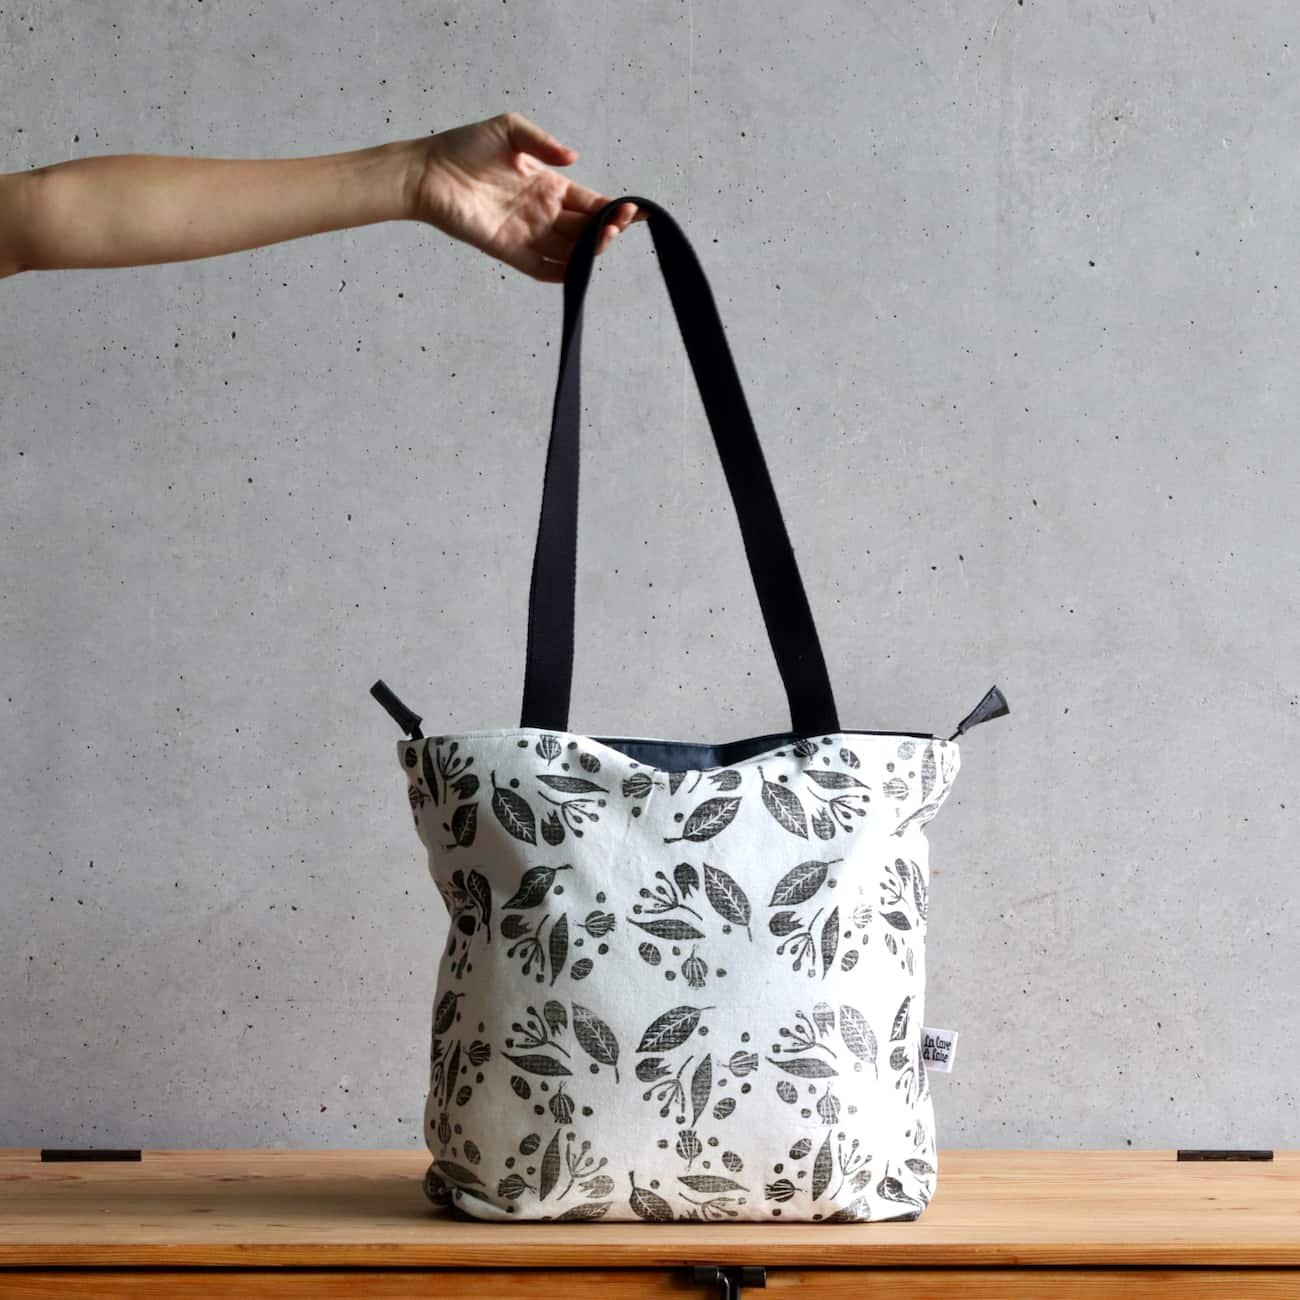 A white tote with a black floral print.